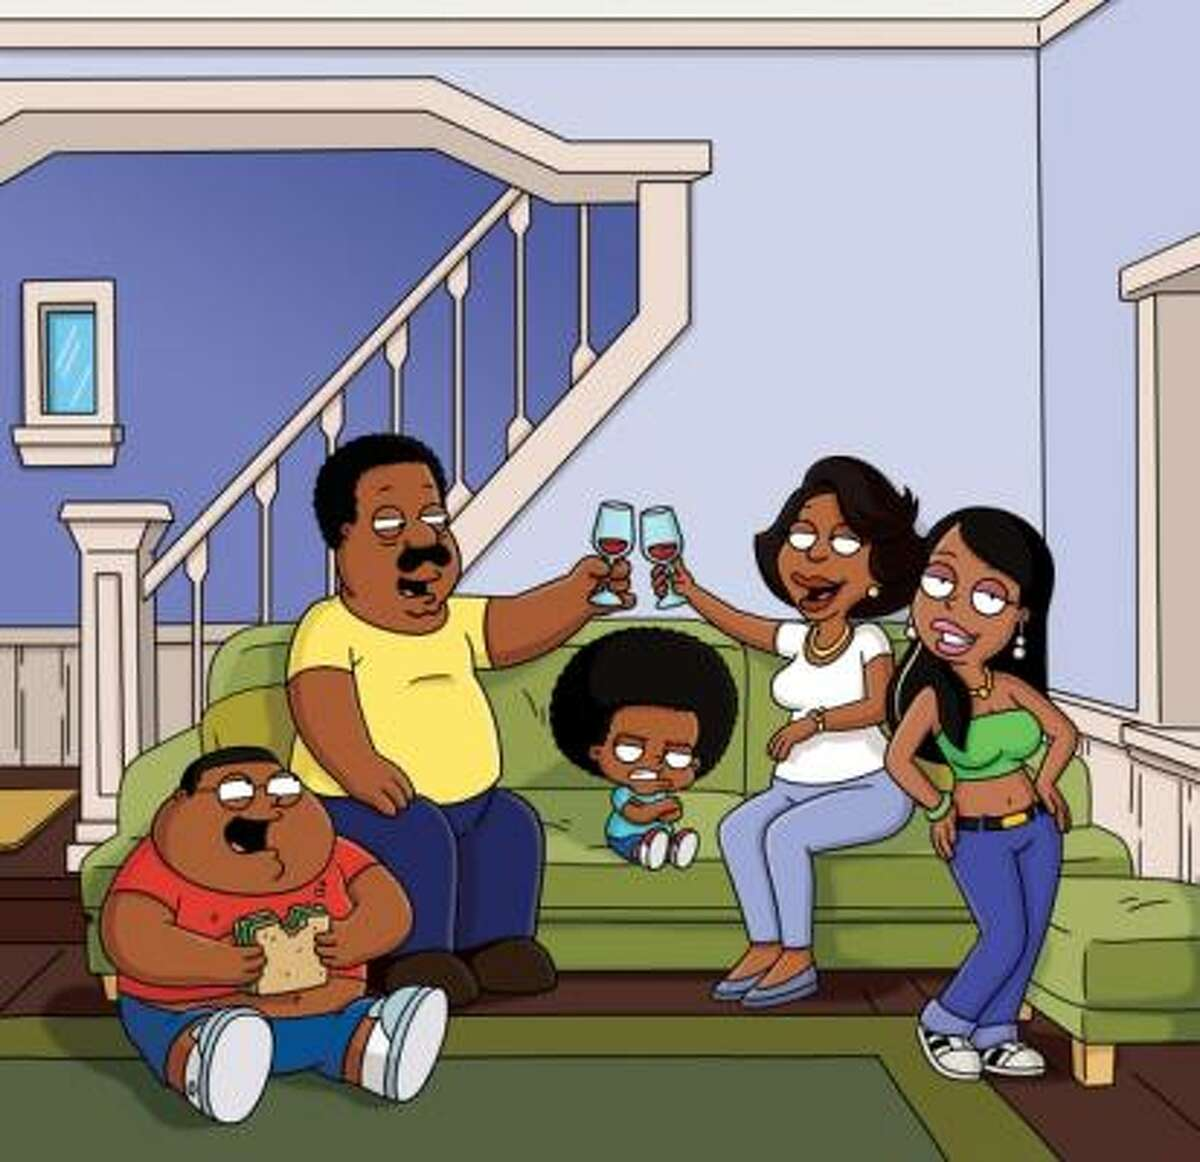 The Cleveland Show is a spinoff of Family Guy - that's all you need to know. You're either in or out. It airs Sundays on Fox.